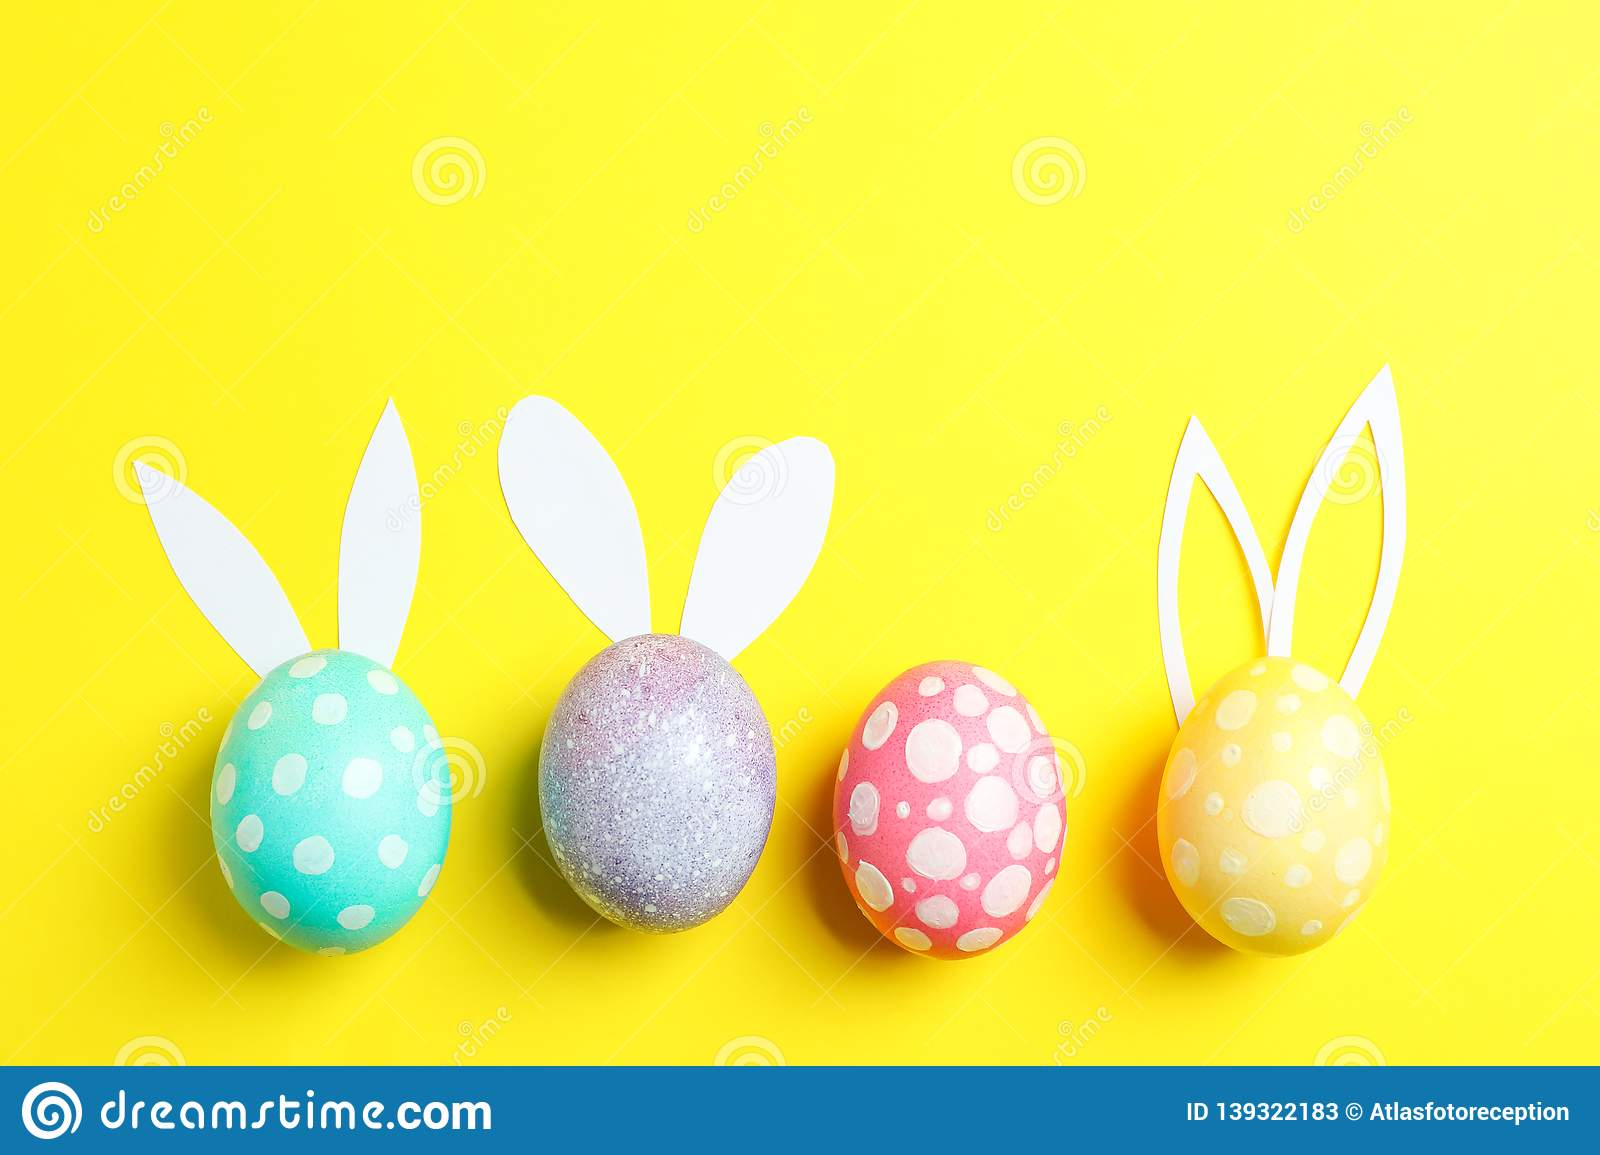 Decorated Easter eggs with cute bunnies ears on yellow background